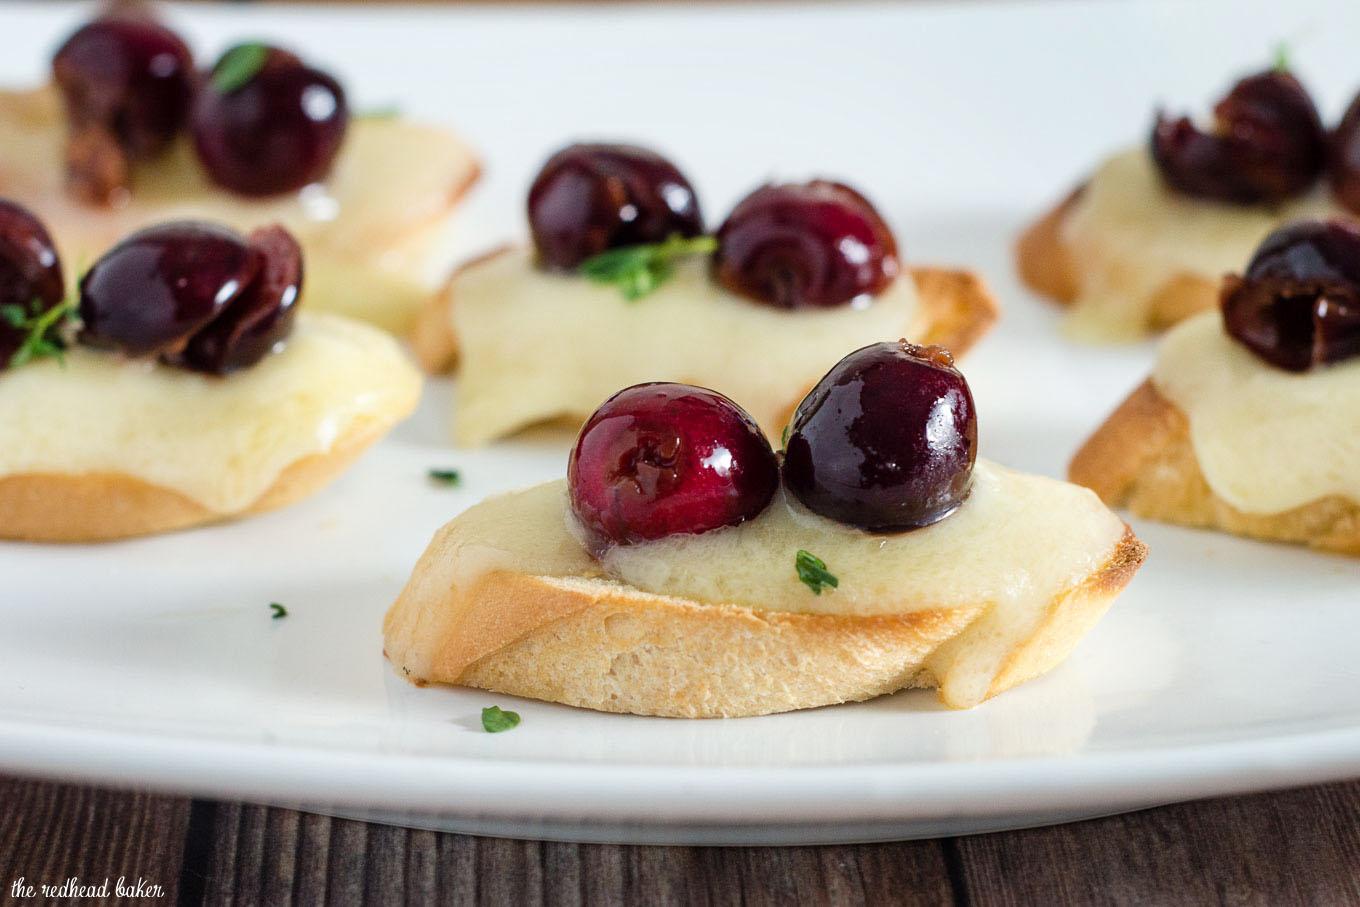 Tired of the same old appetizers? Try this cherry bruschetta — toasted baguette slices are topped with melted brie, beer-soaked cherries and fresh thyme.